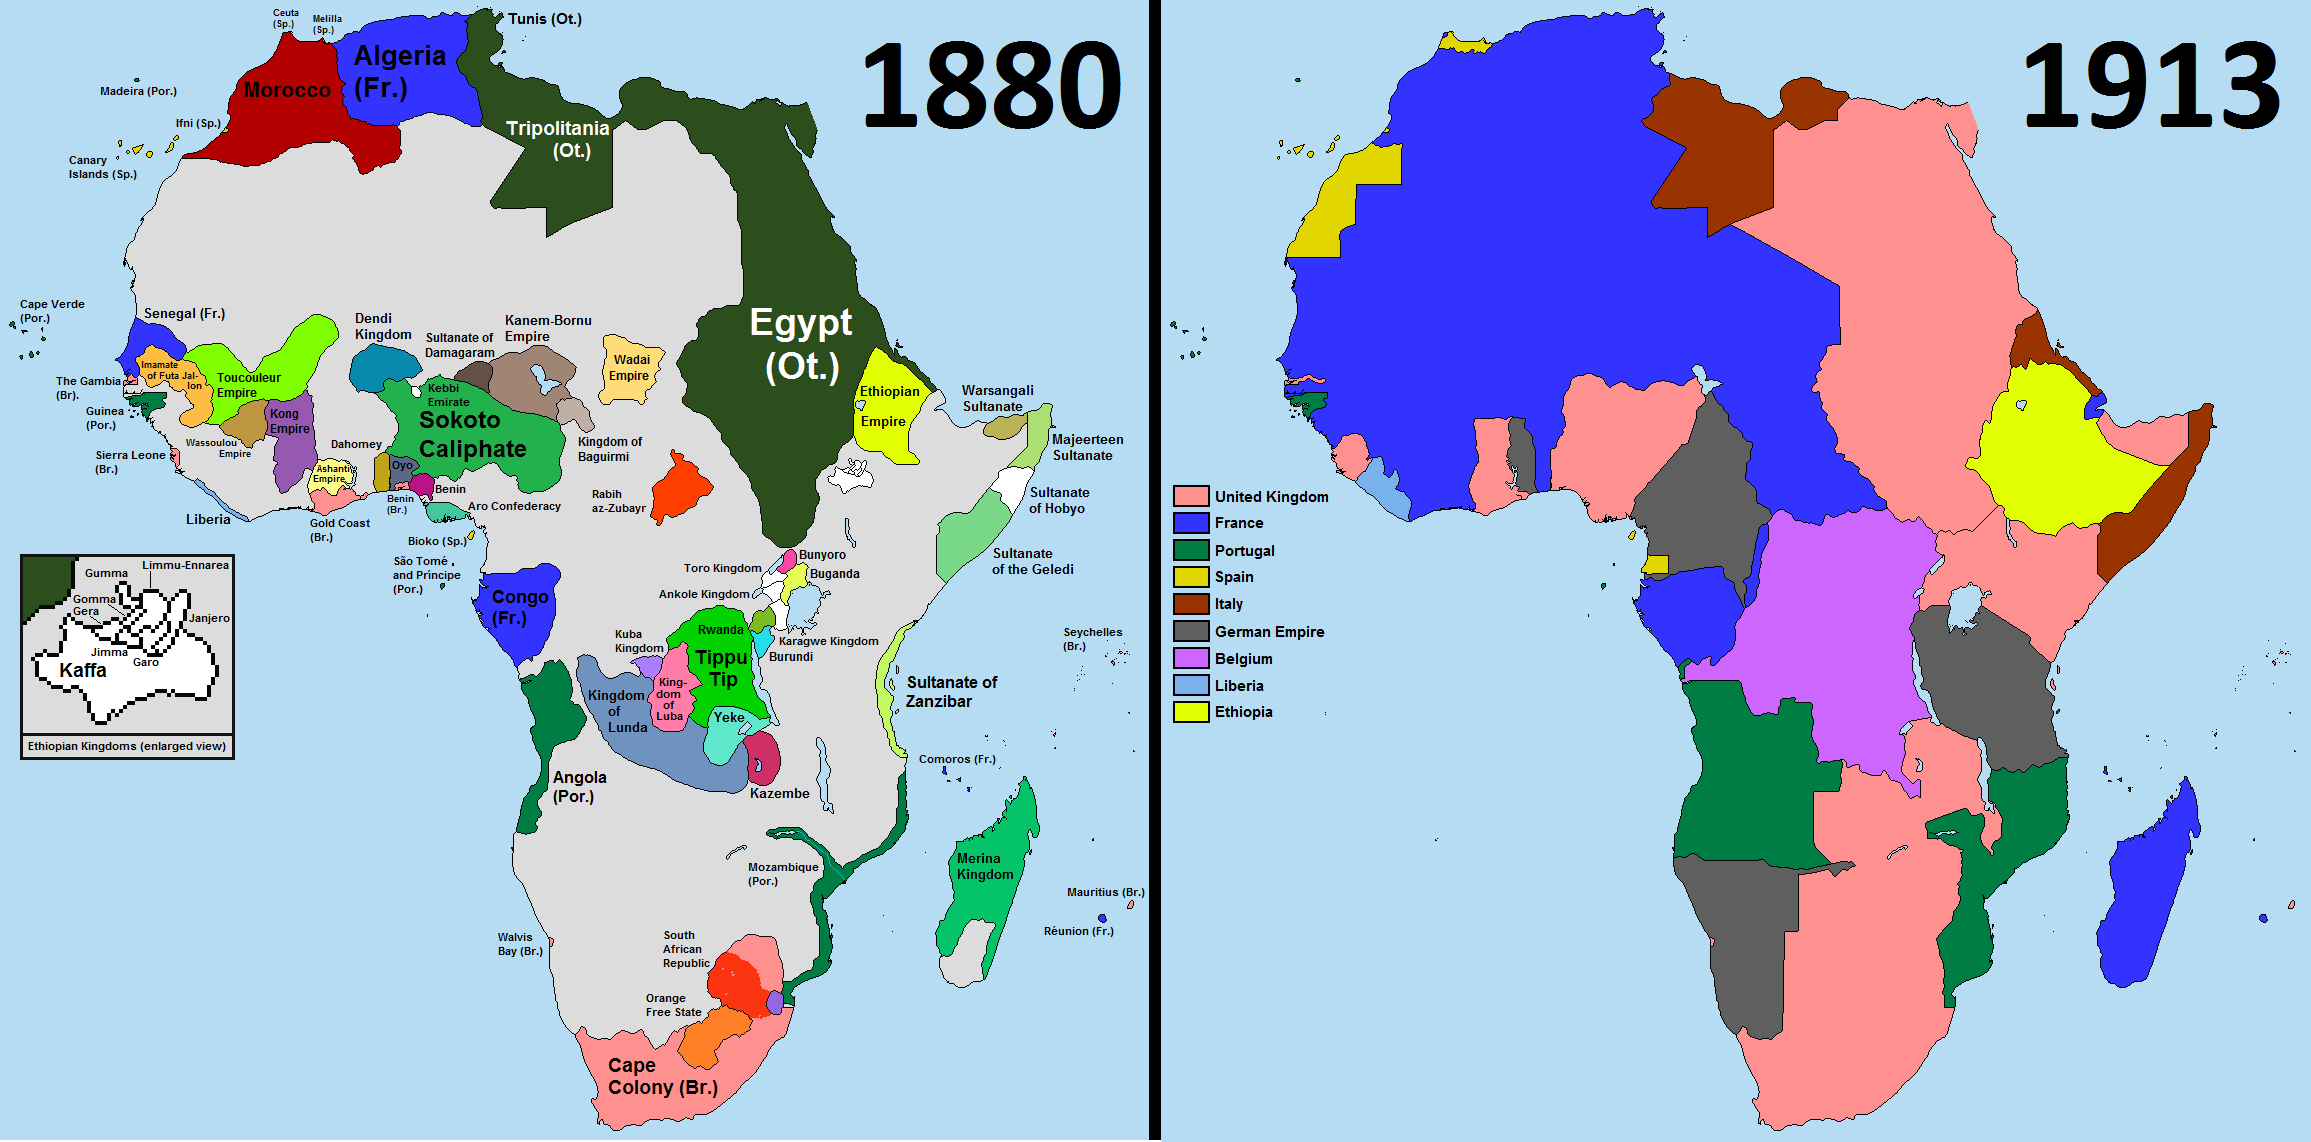 A map comparison of Africa in 1880 and in 1913 | Africa | Africa